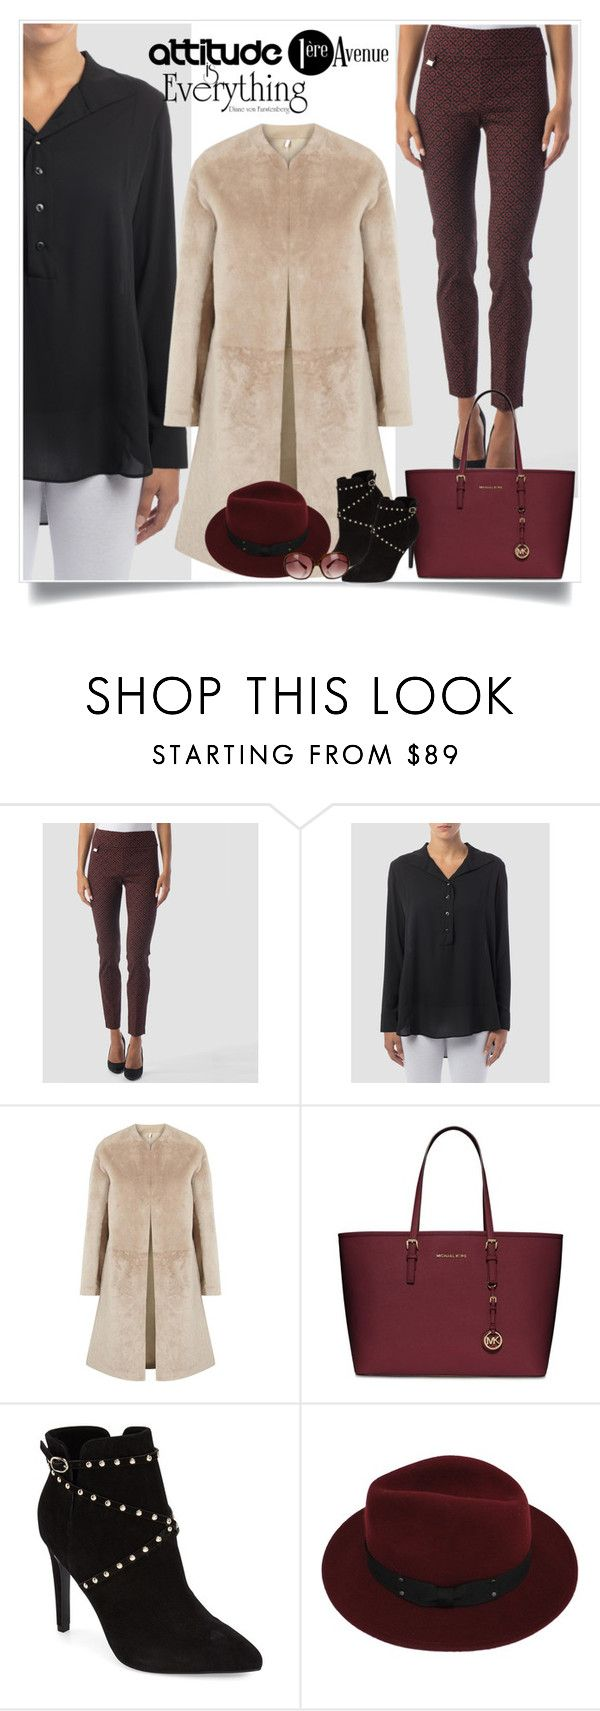 """""""Stylish"""" by sabinakopic ❤ liked on Polyvore featuring Joseph Ribkoff, Helmut Lang, MICHAEL Michael Kors, Topshop, Sans Souci, Oliver Peoples, country, women's clothing, women's fashion and women"""